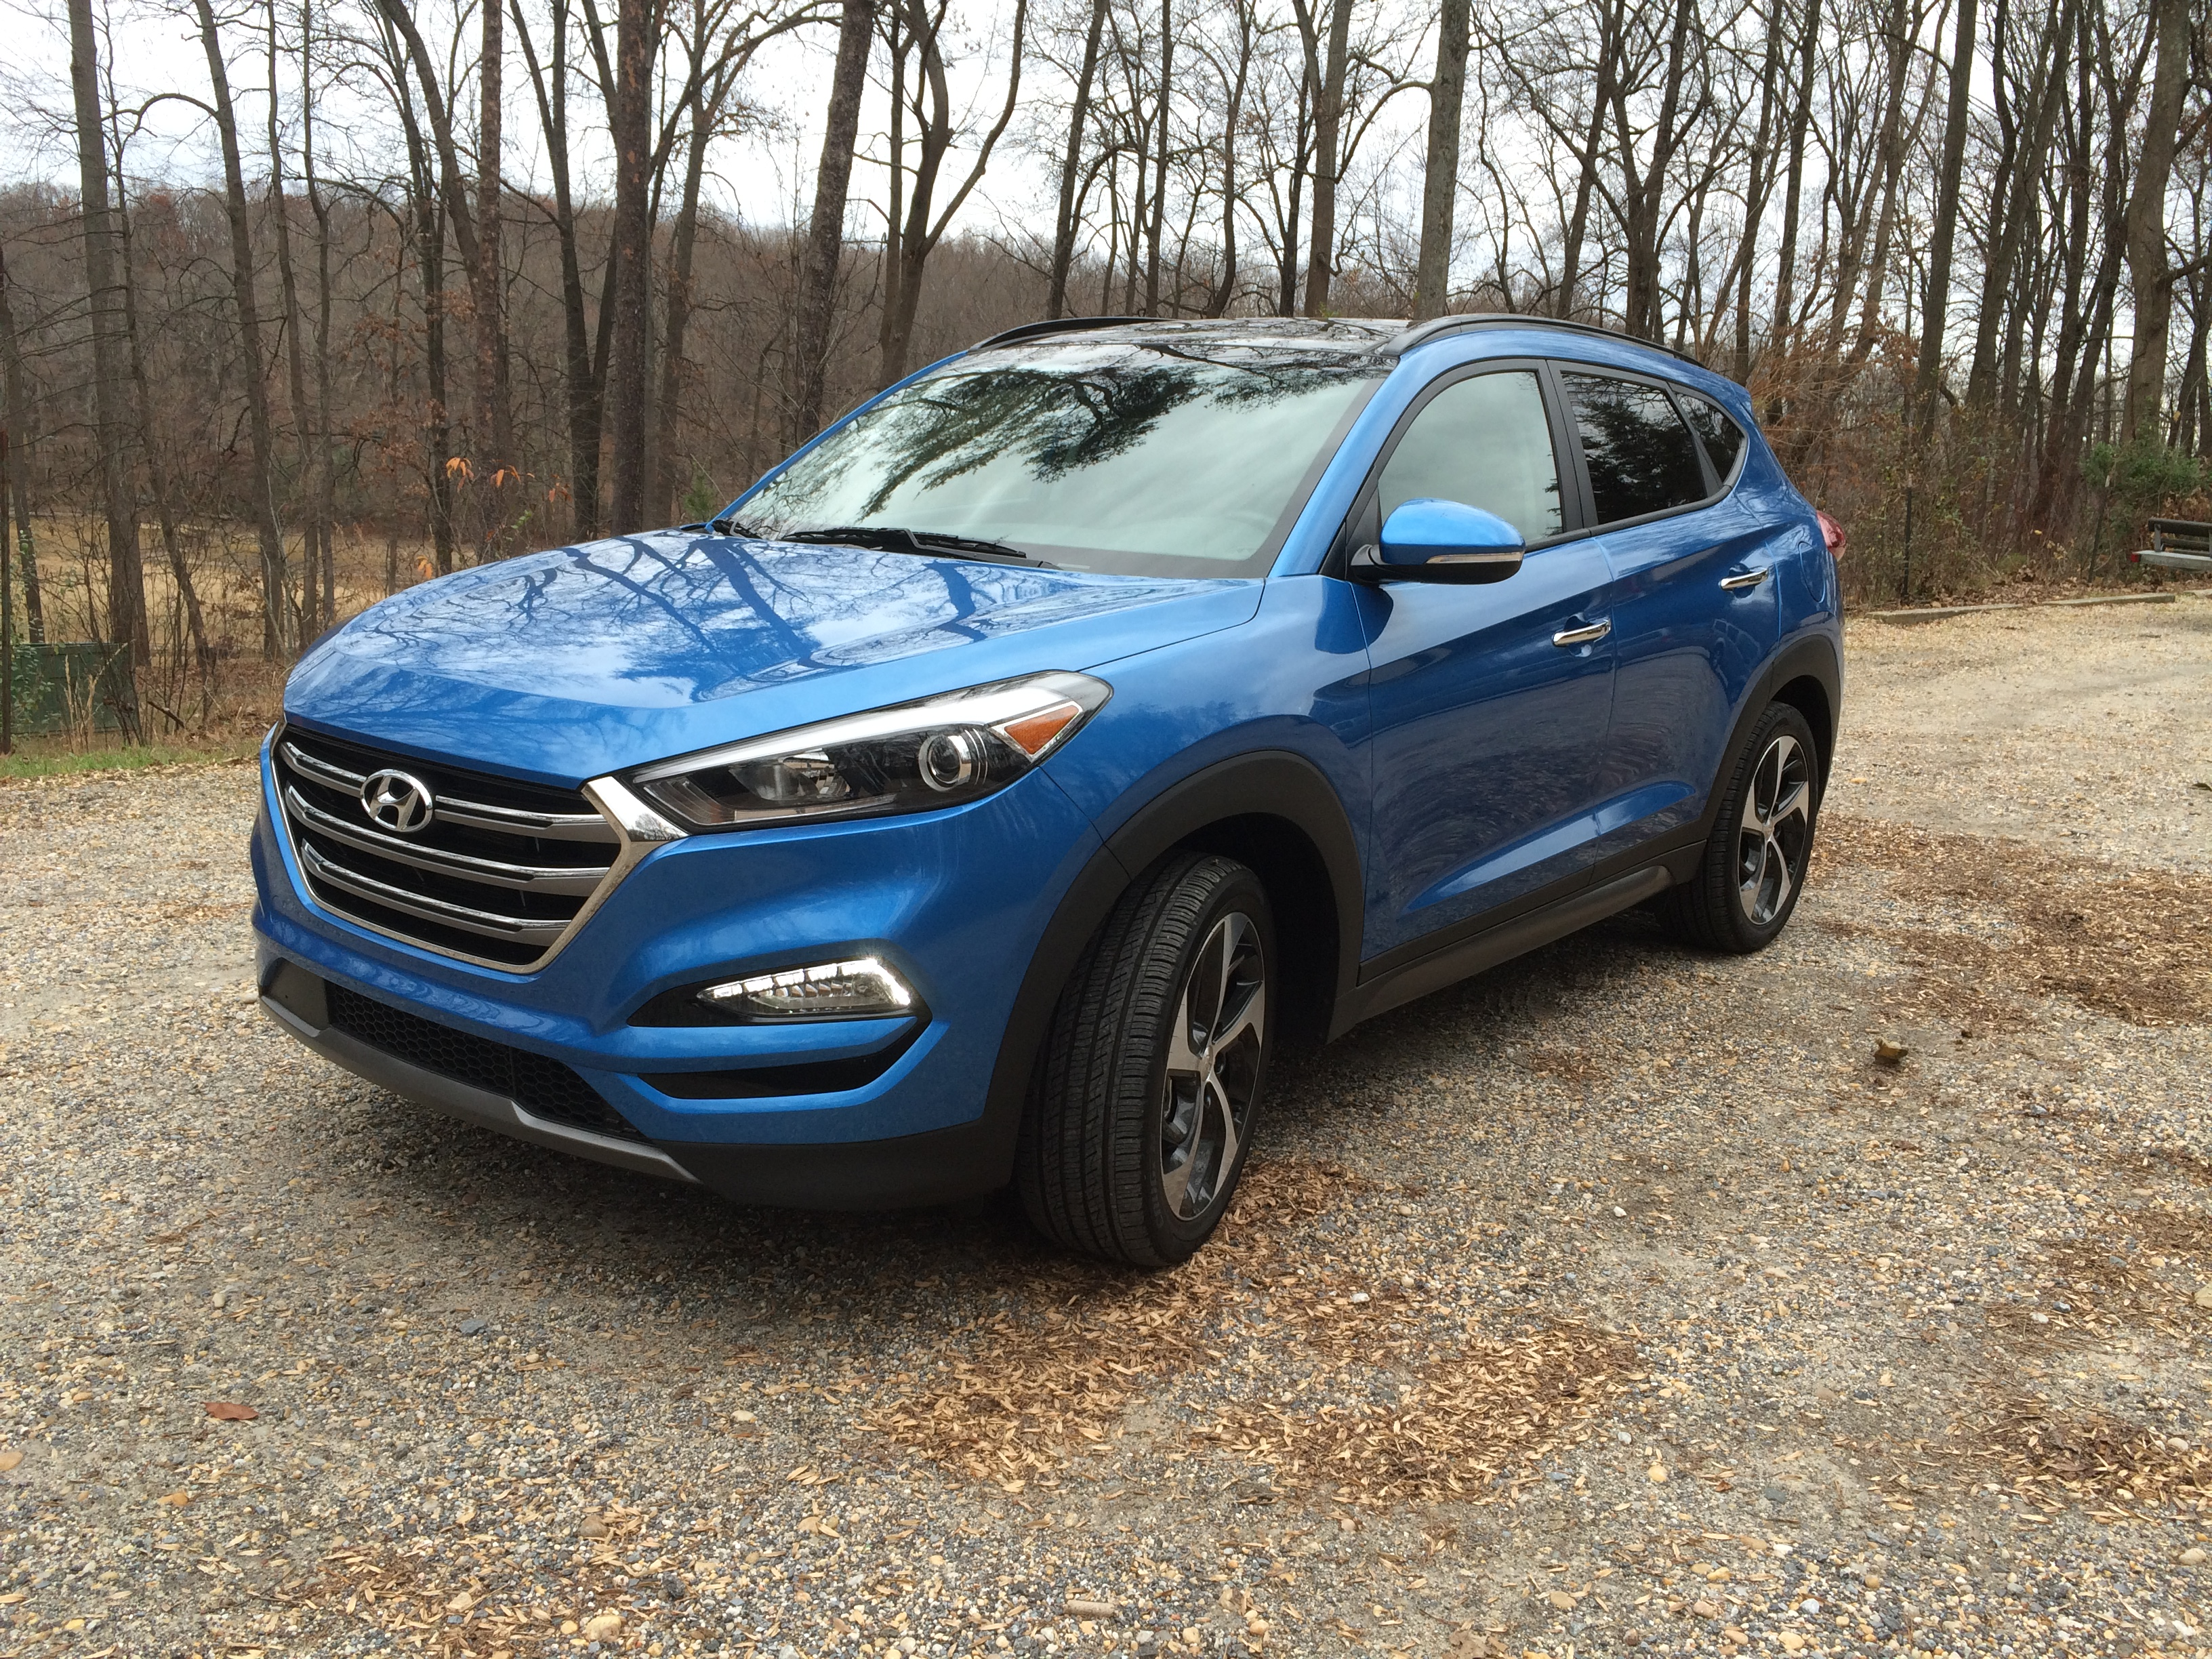 Hyundai upgrades compact Tucson Limited crossover for 2016